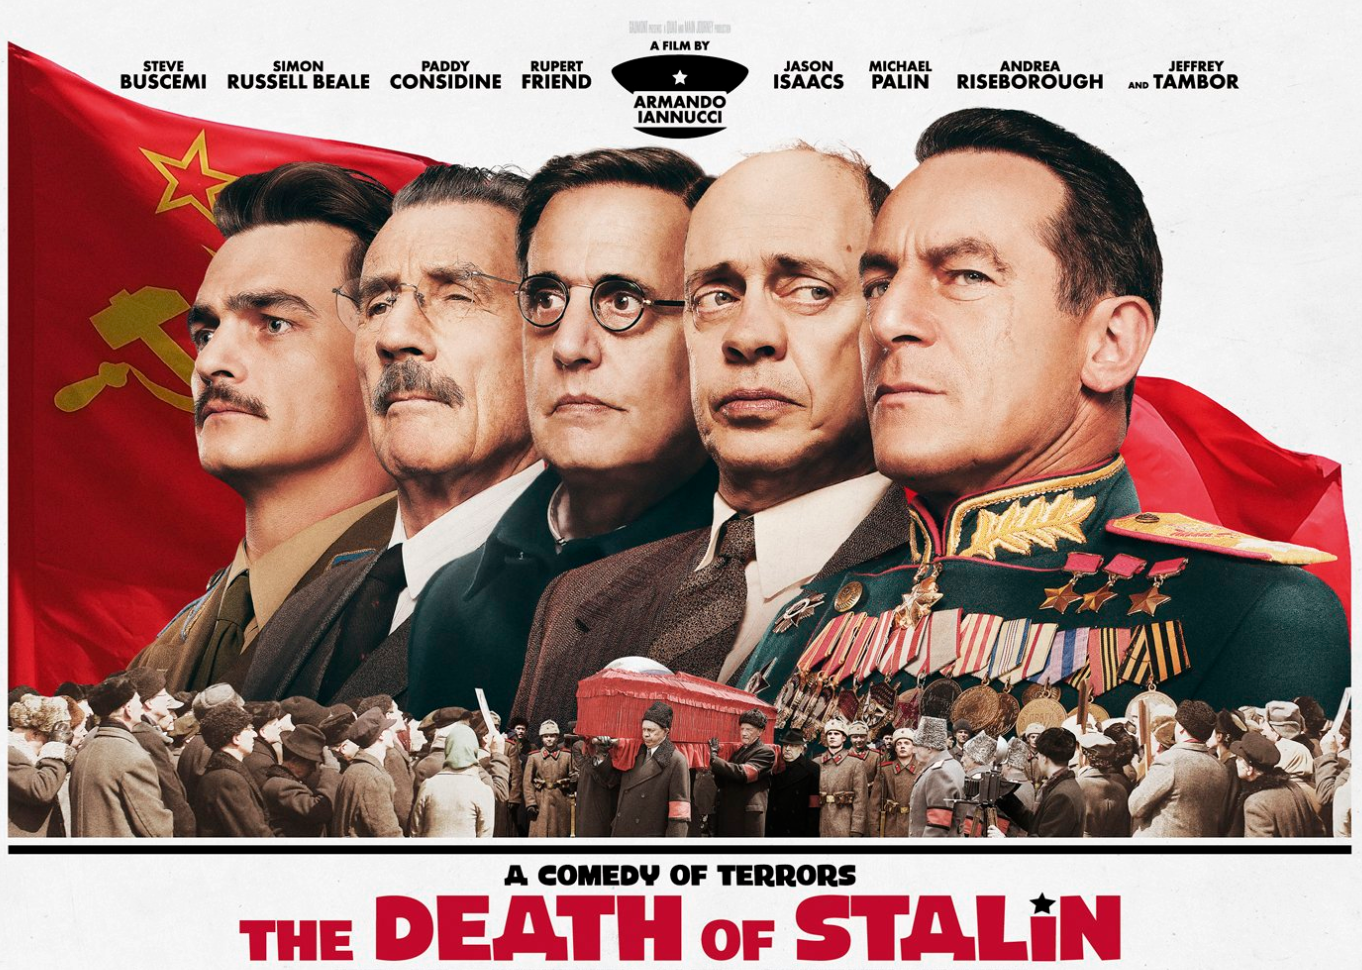 Black comedy 'The Death of Stalin' pulled from Russian cinemas after backlash